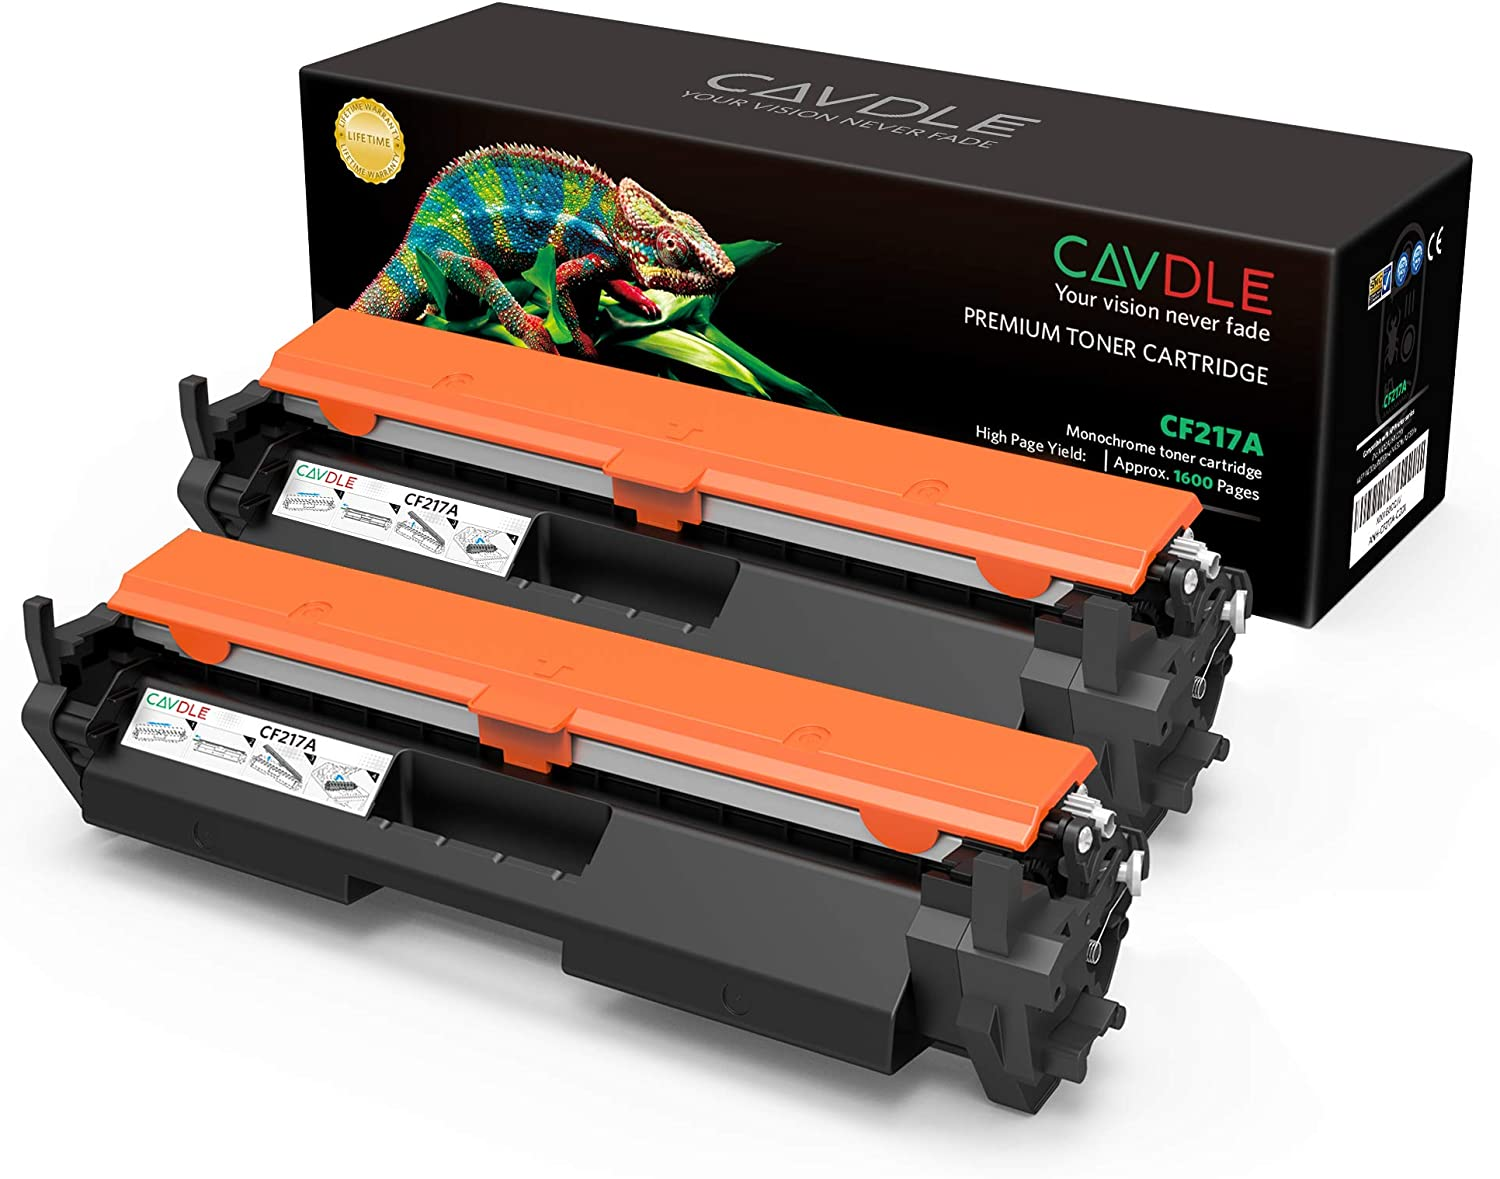 CAVDLE Compatible Toner Cartridge Replacement for HP 17A CF217A Toner for HP Laserjet Pro MFP M130fw M130nw M130fn M130a M102w M102a M130 M102 Printer (2PK)